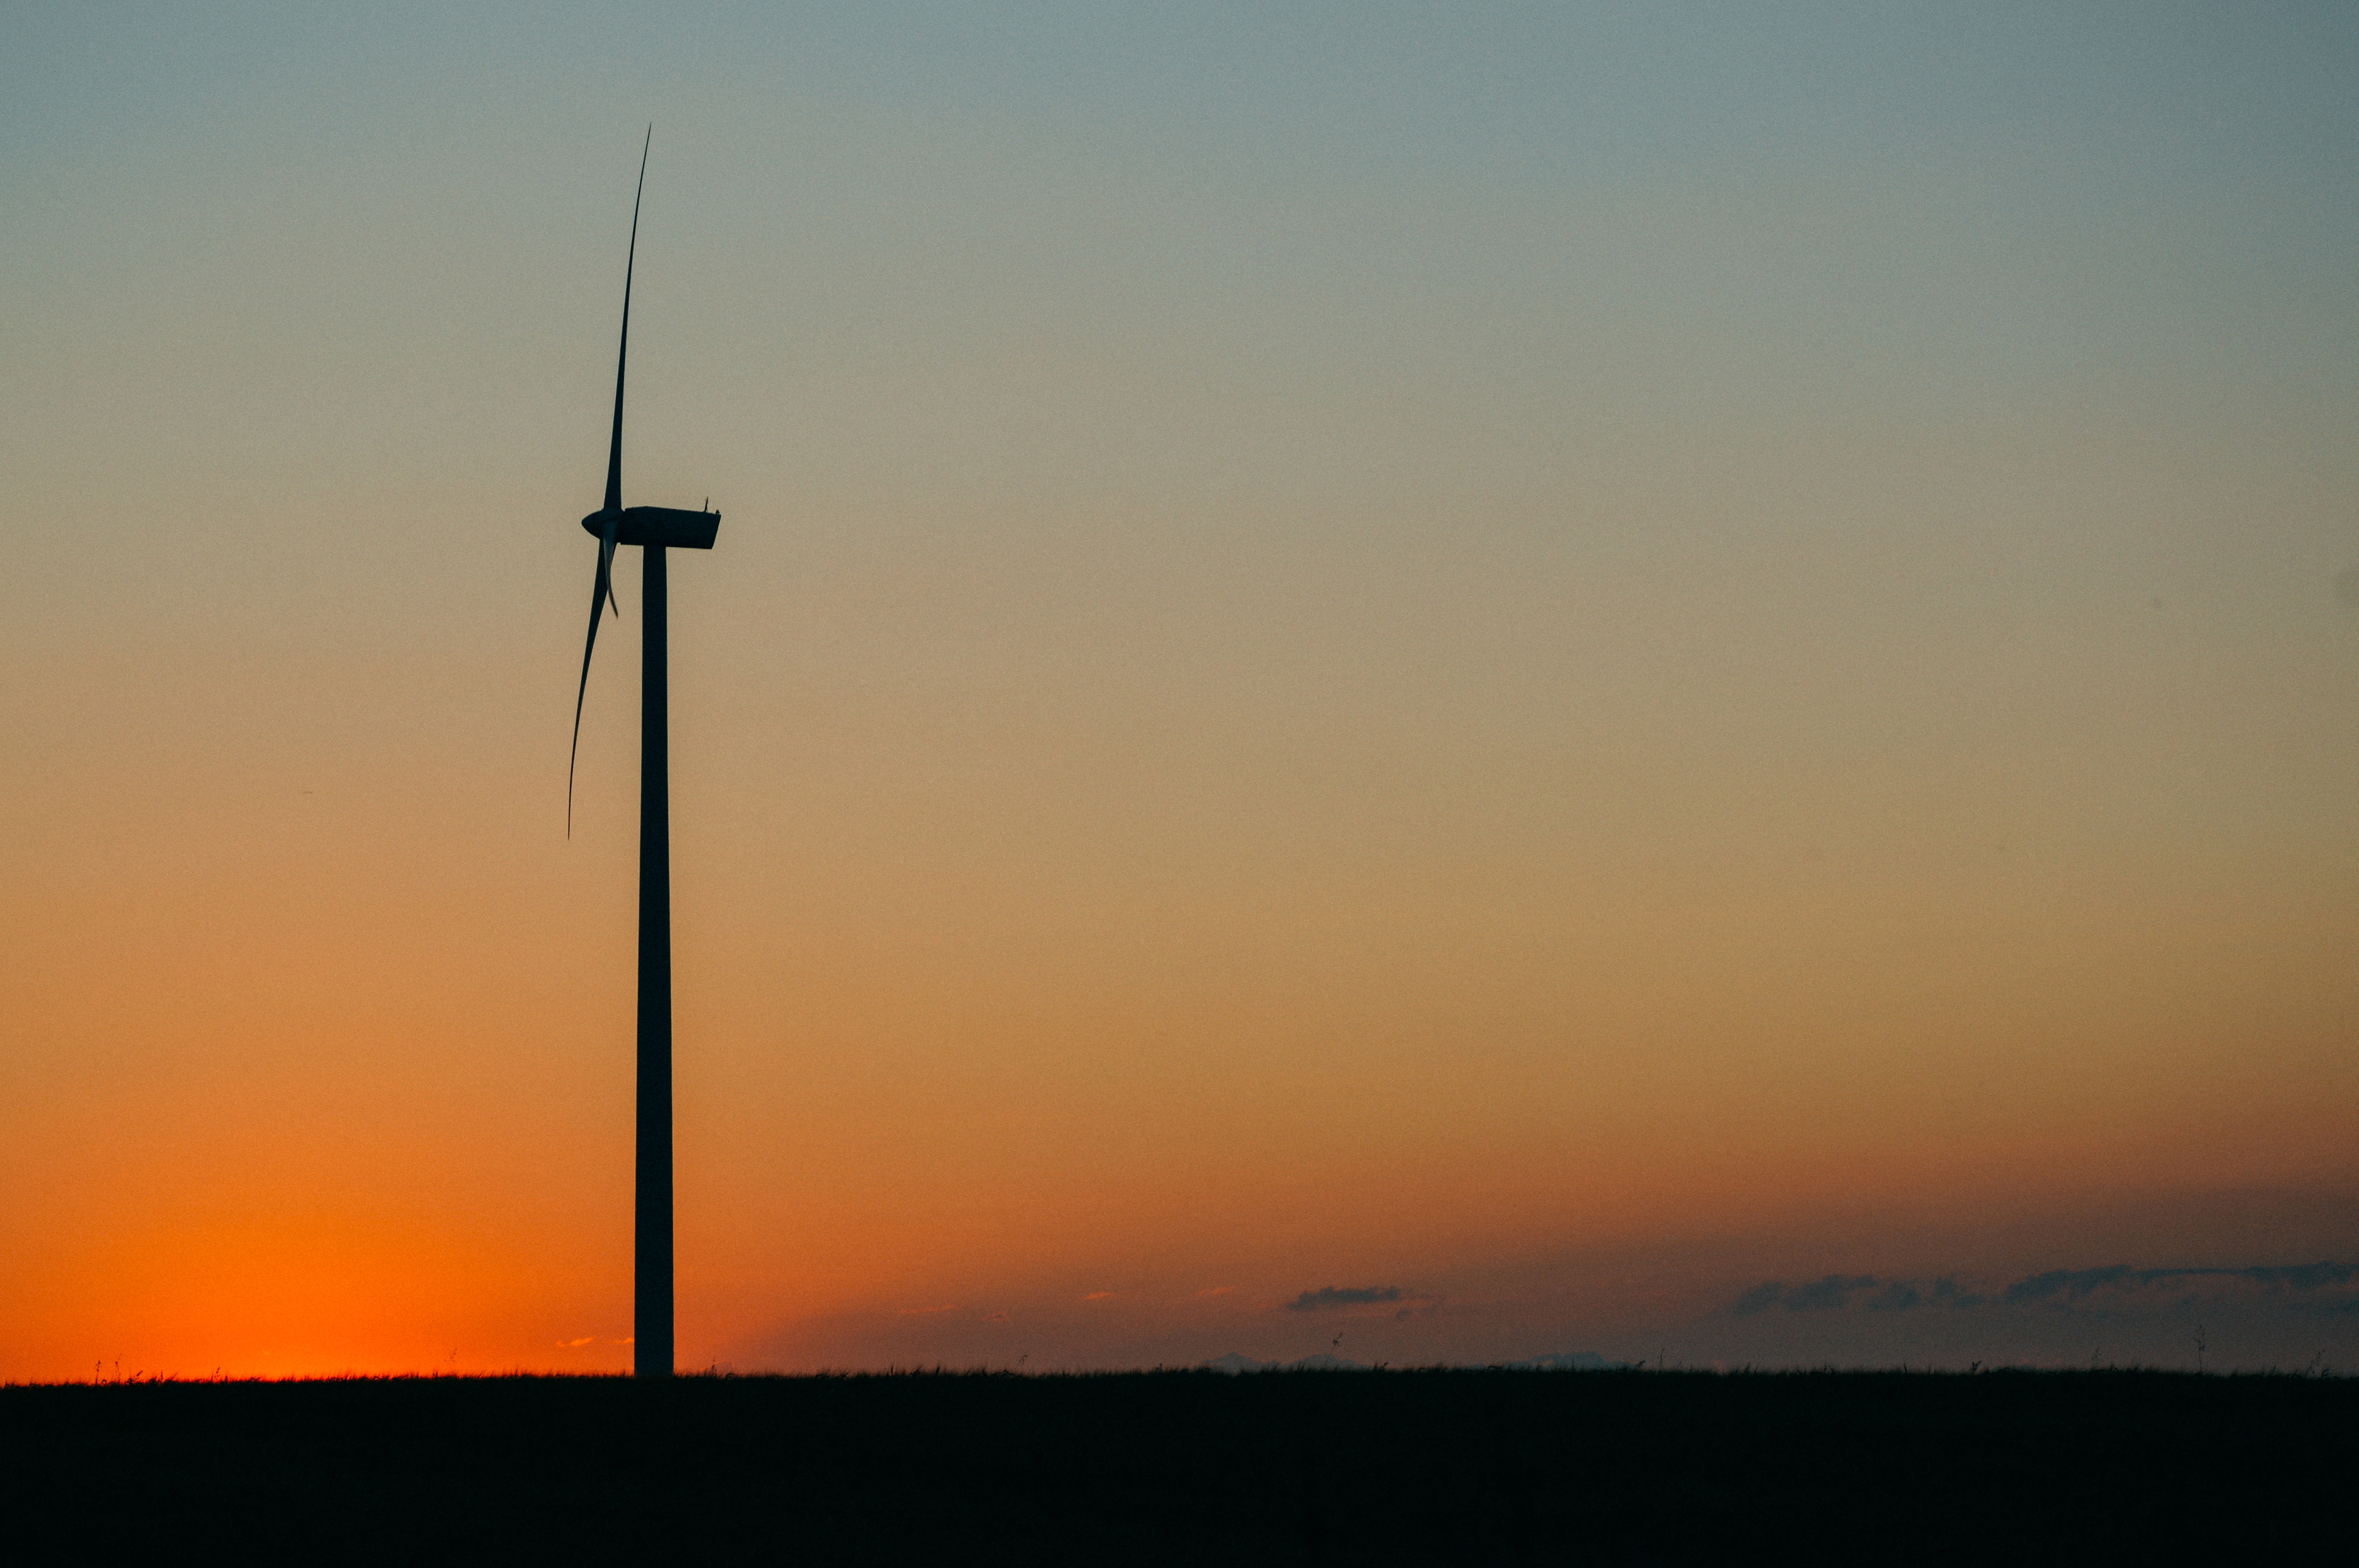 Data localisation could boost India's renewable energy